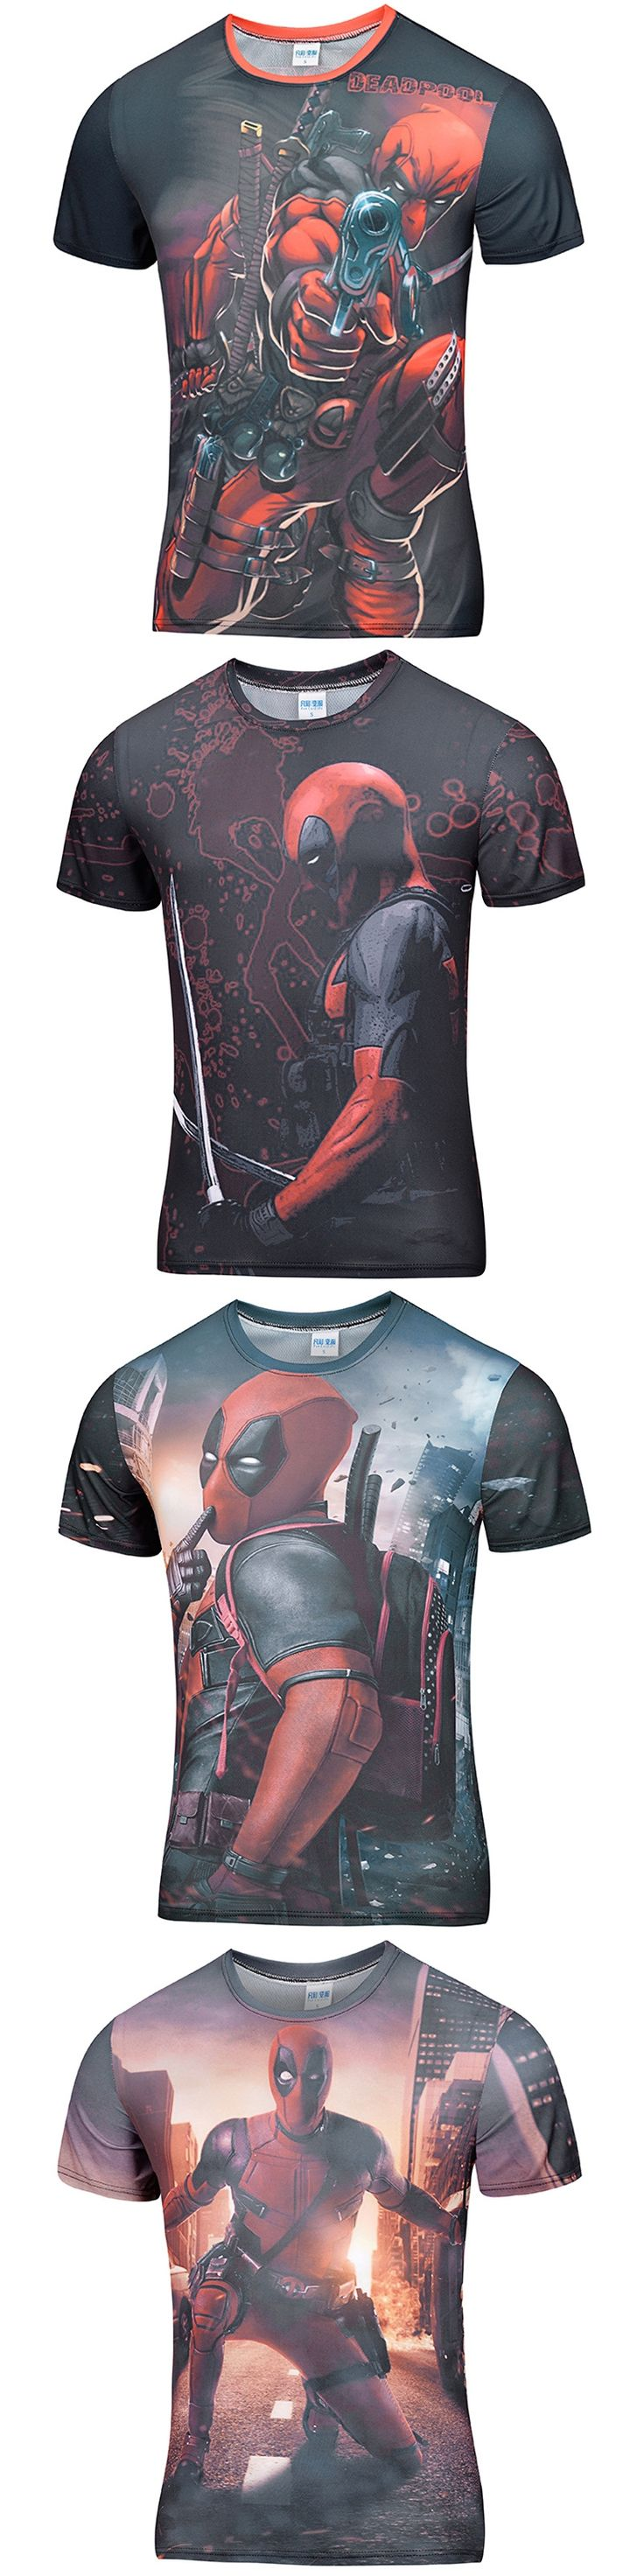 2016 New Arrive American Comic lego Deadpool costume t shirt Men Women Cartoon Characters 3d print T-Shirt Funny Hip Hop tshirt